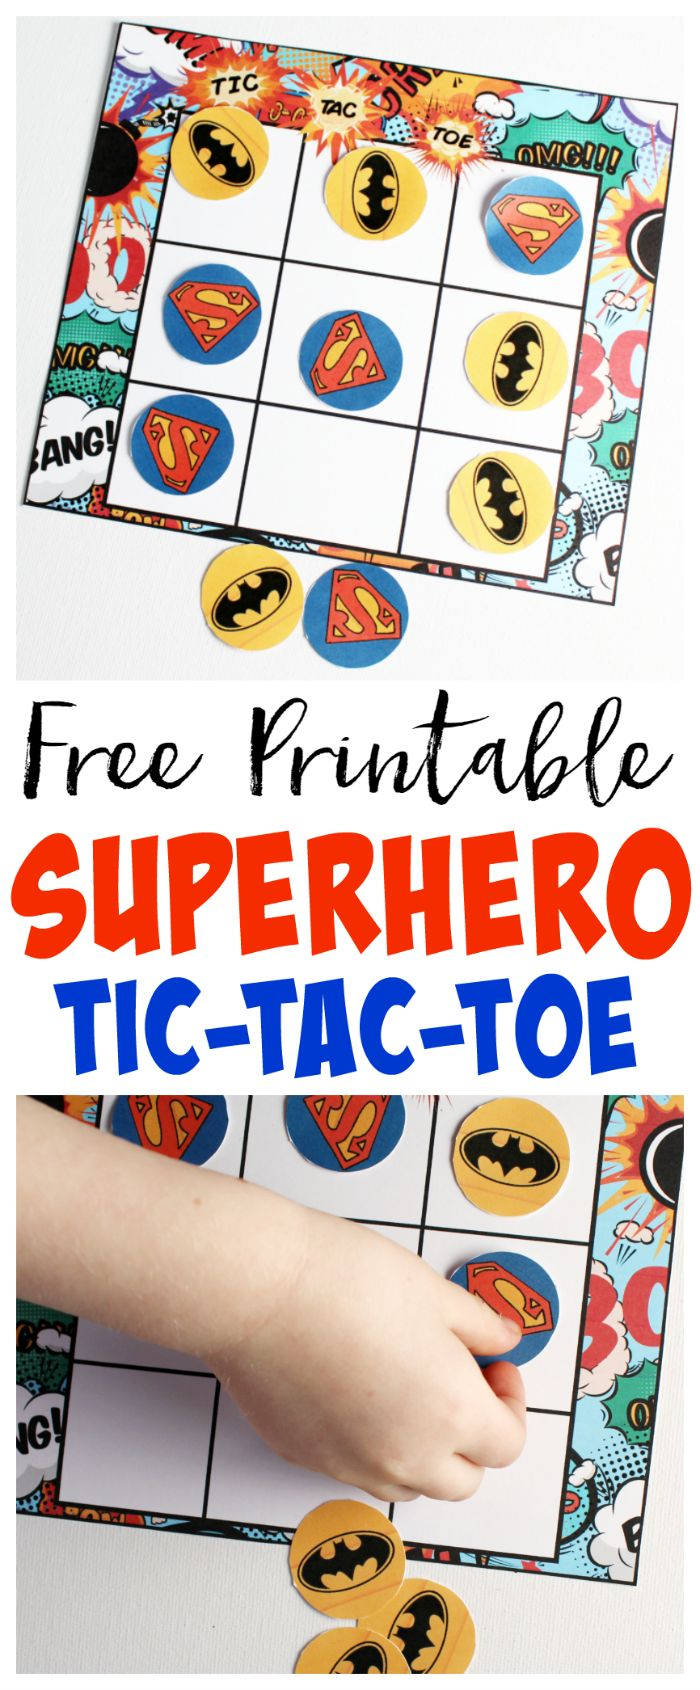 Superhero Tic-Tac-Toe Free Printable